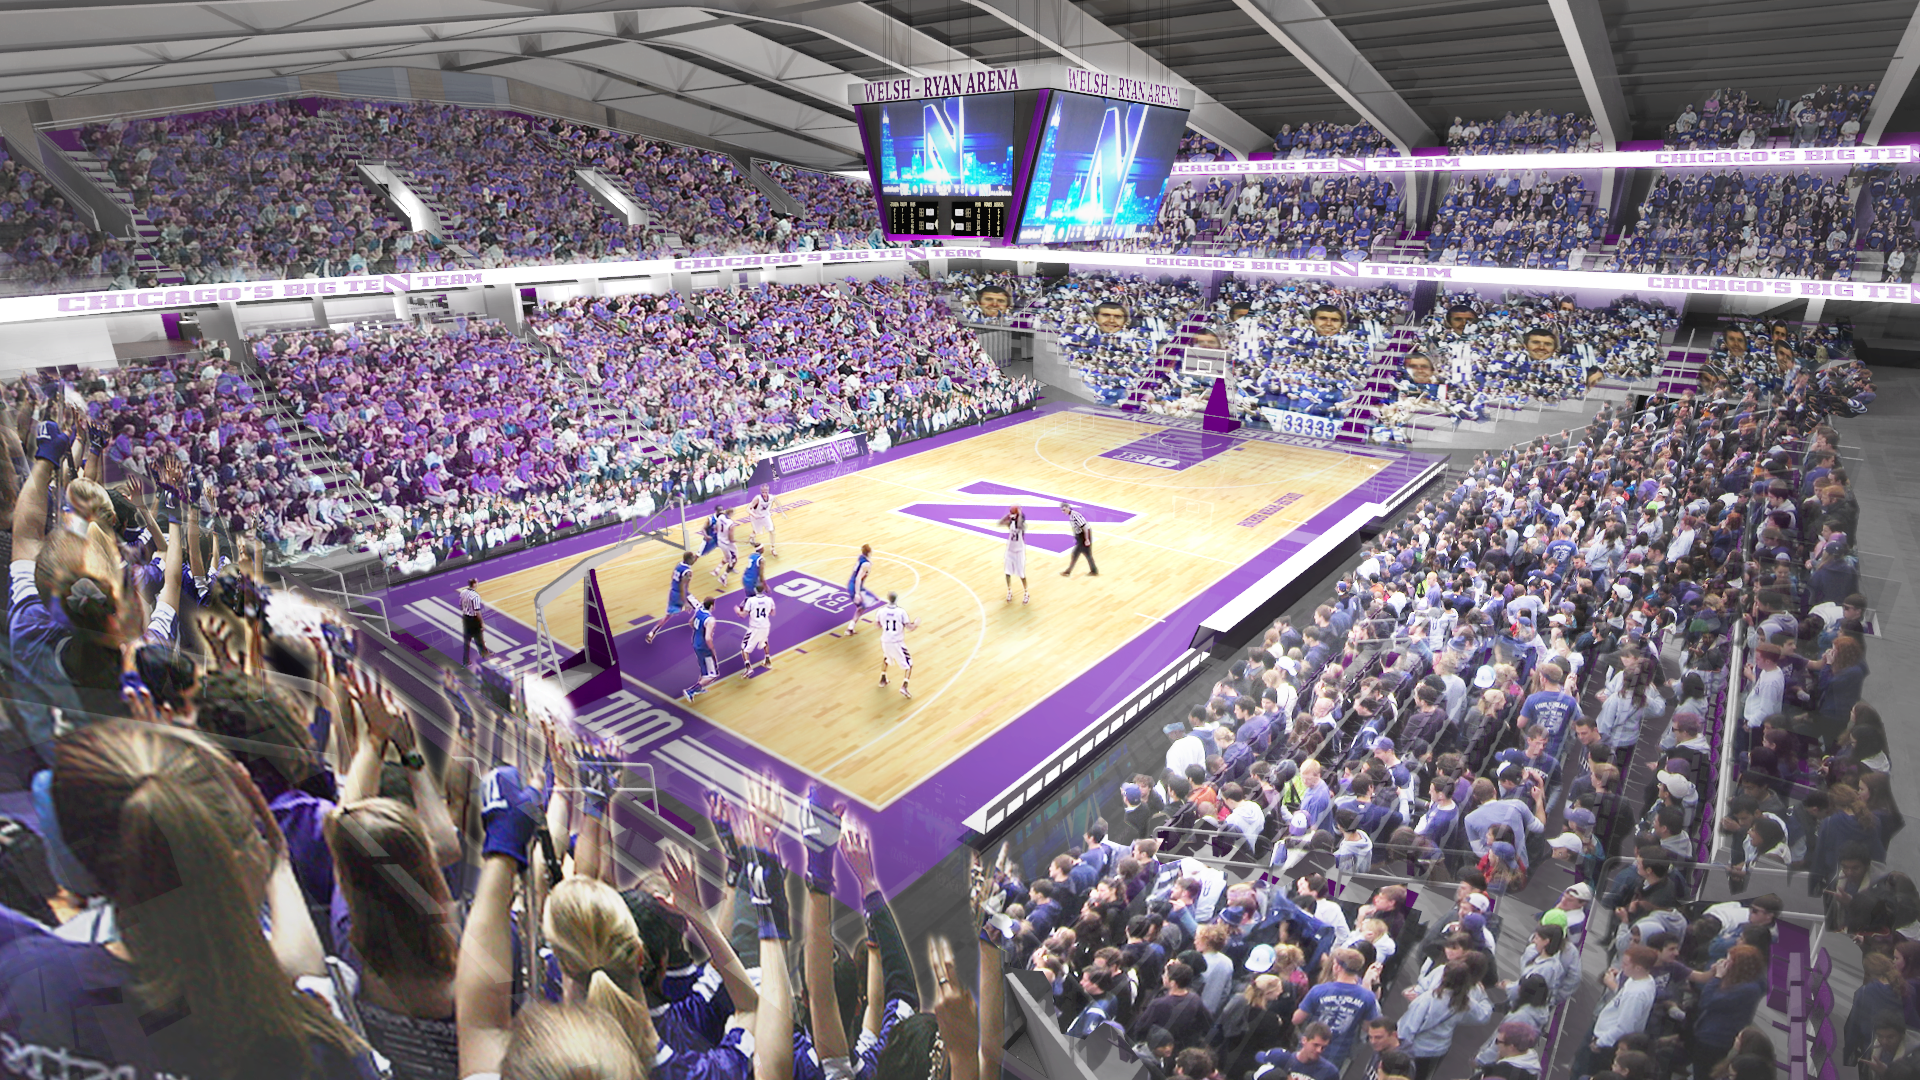 Northwestern S Welsh Ryan Arena To Receive Long Overdue